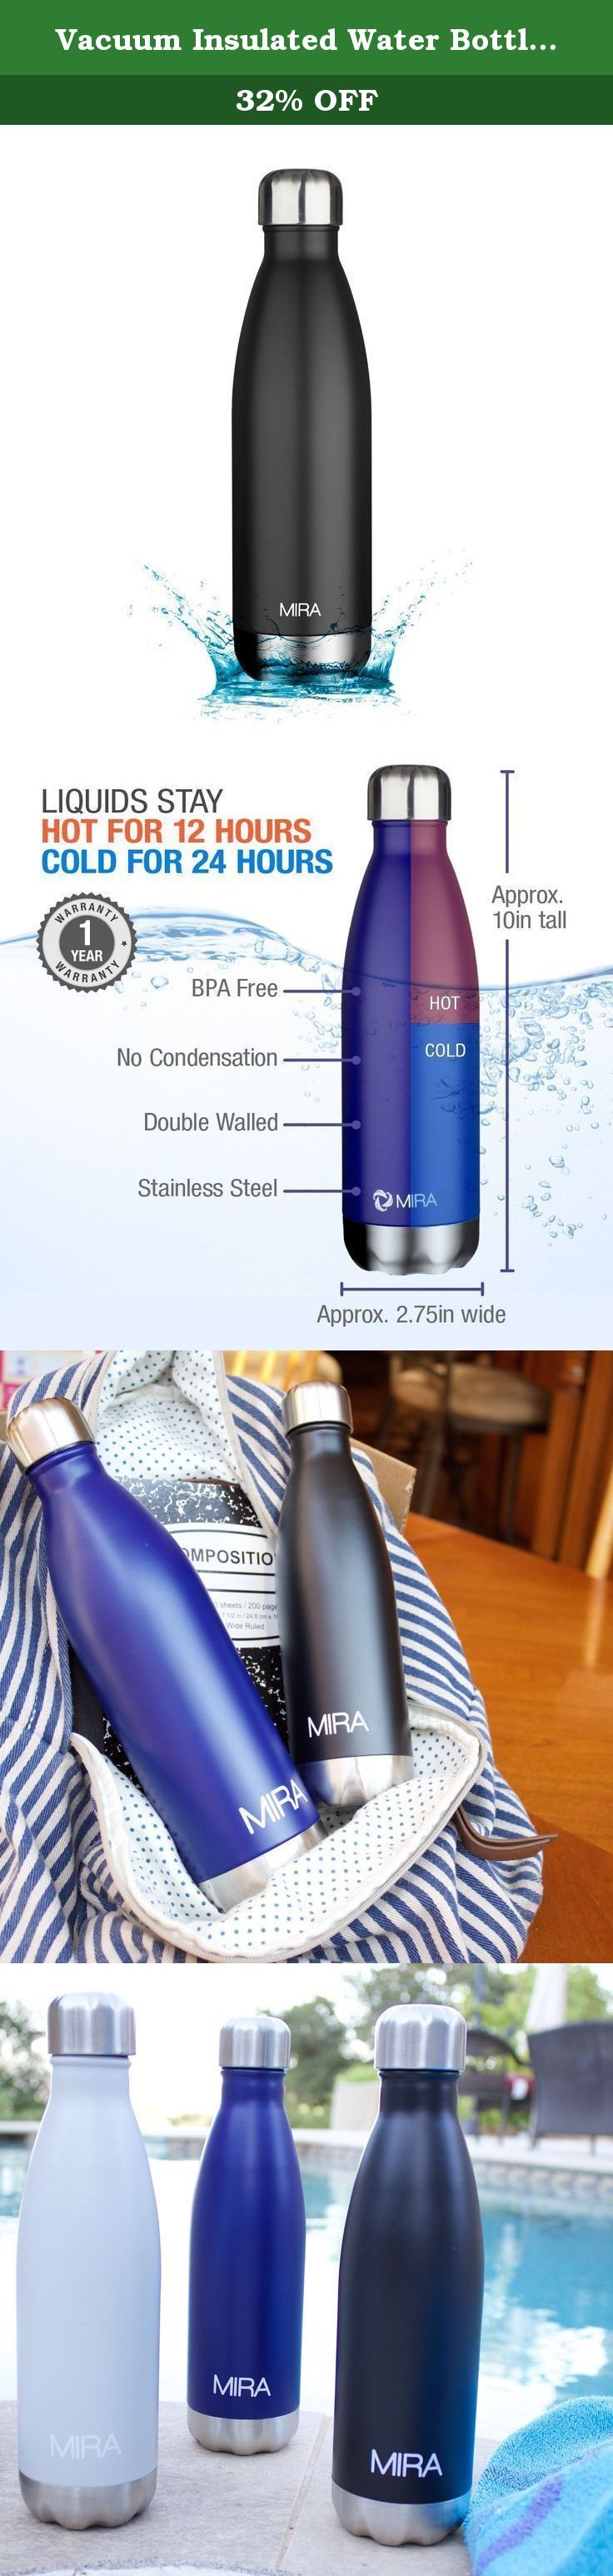 Vacuum Insulated Water Bottle | Double Walled Stainless Steel Cola Shape Travel Water Bottle - BPA Free, Keeps Your Drink Hot & Cold | by MIRA (Black, 17 oz (500ml)). Vacuum Insulated Water Bottle | Double Walled Stainless Steel Cola Shape Travel Water Bottle - No Sweating, Keeps Your Drink Hot & Cold | Grey * Made of food-grade 18/8 stainless steel, 100% BPA and Phthalate free. Feel free to use again and again and send it to school with your little ones. * The stainless steel material...